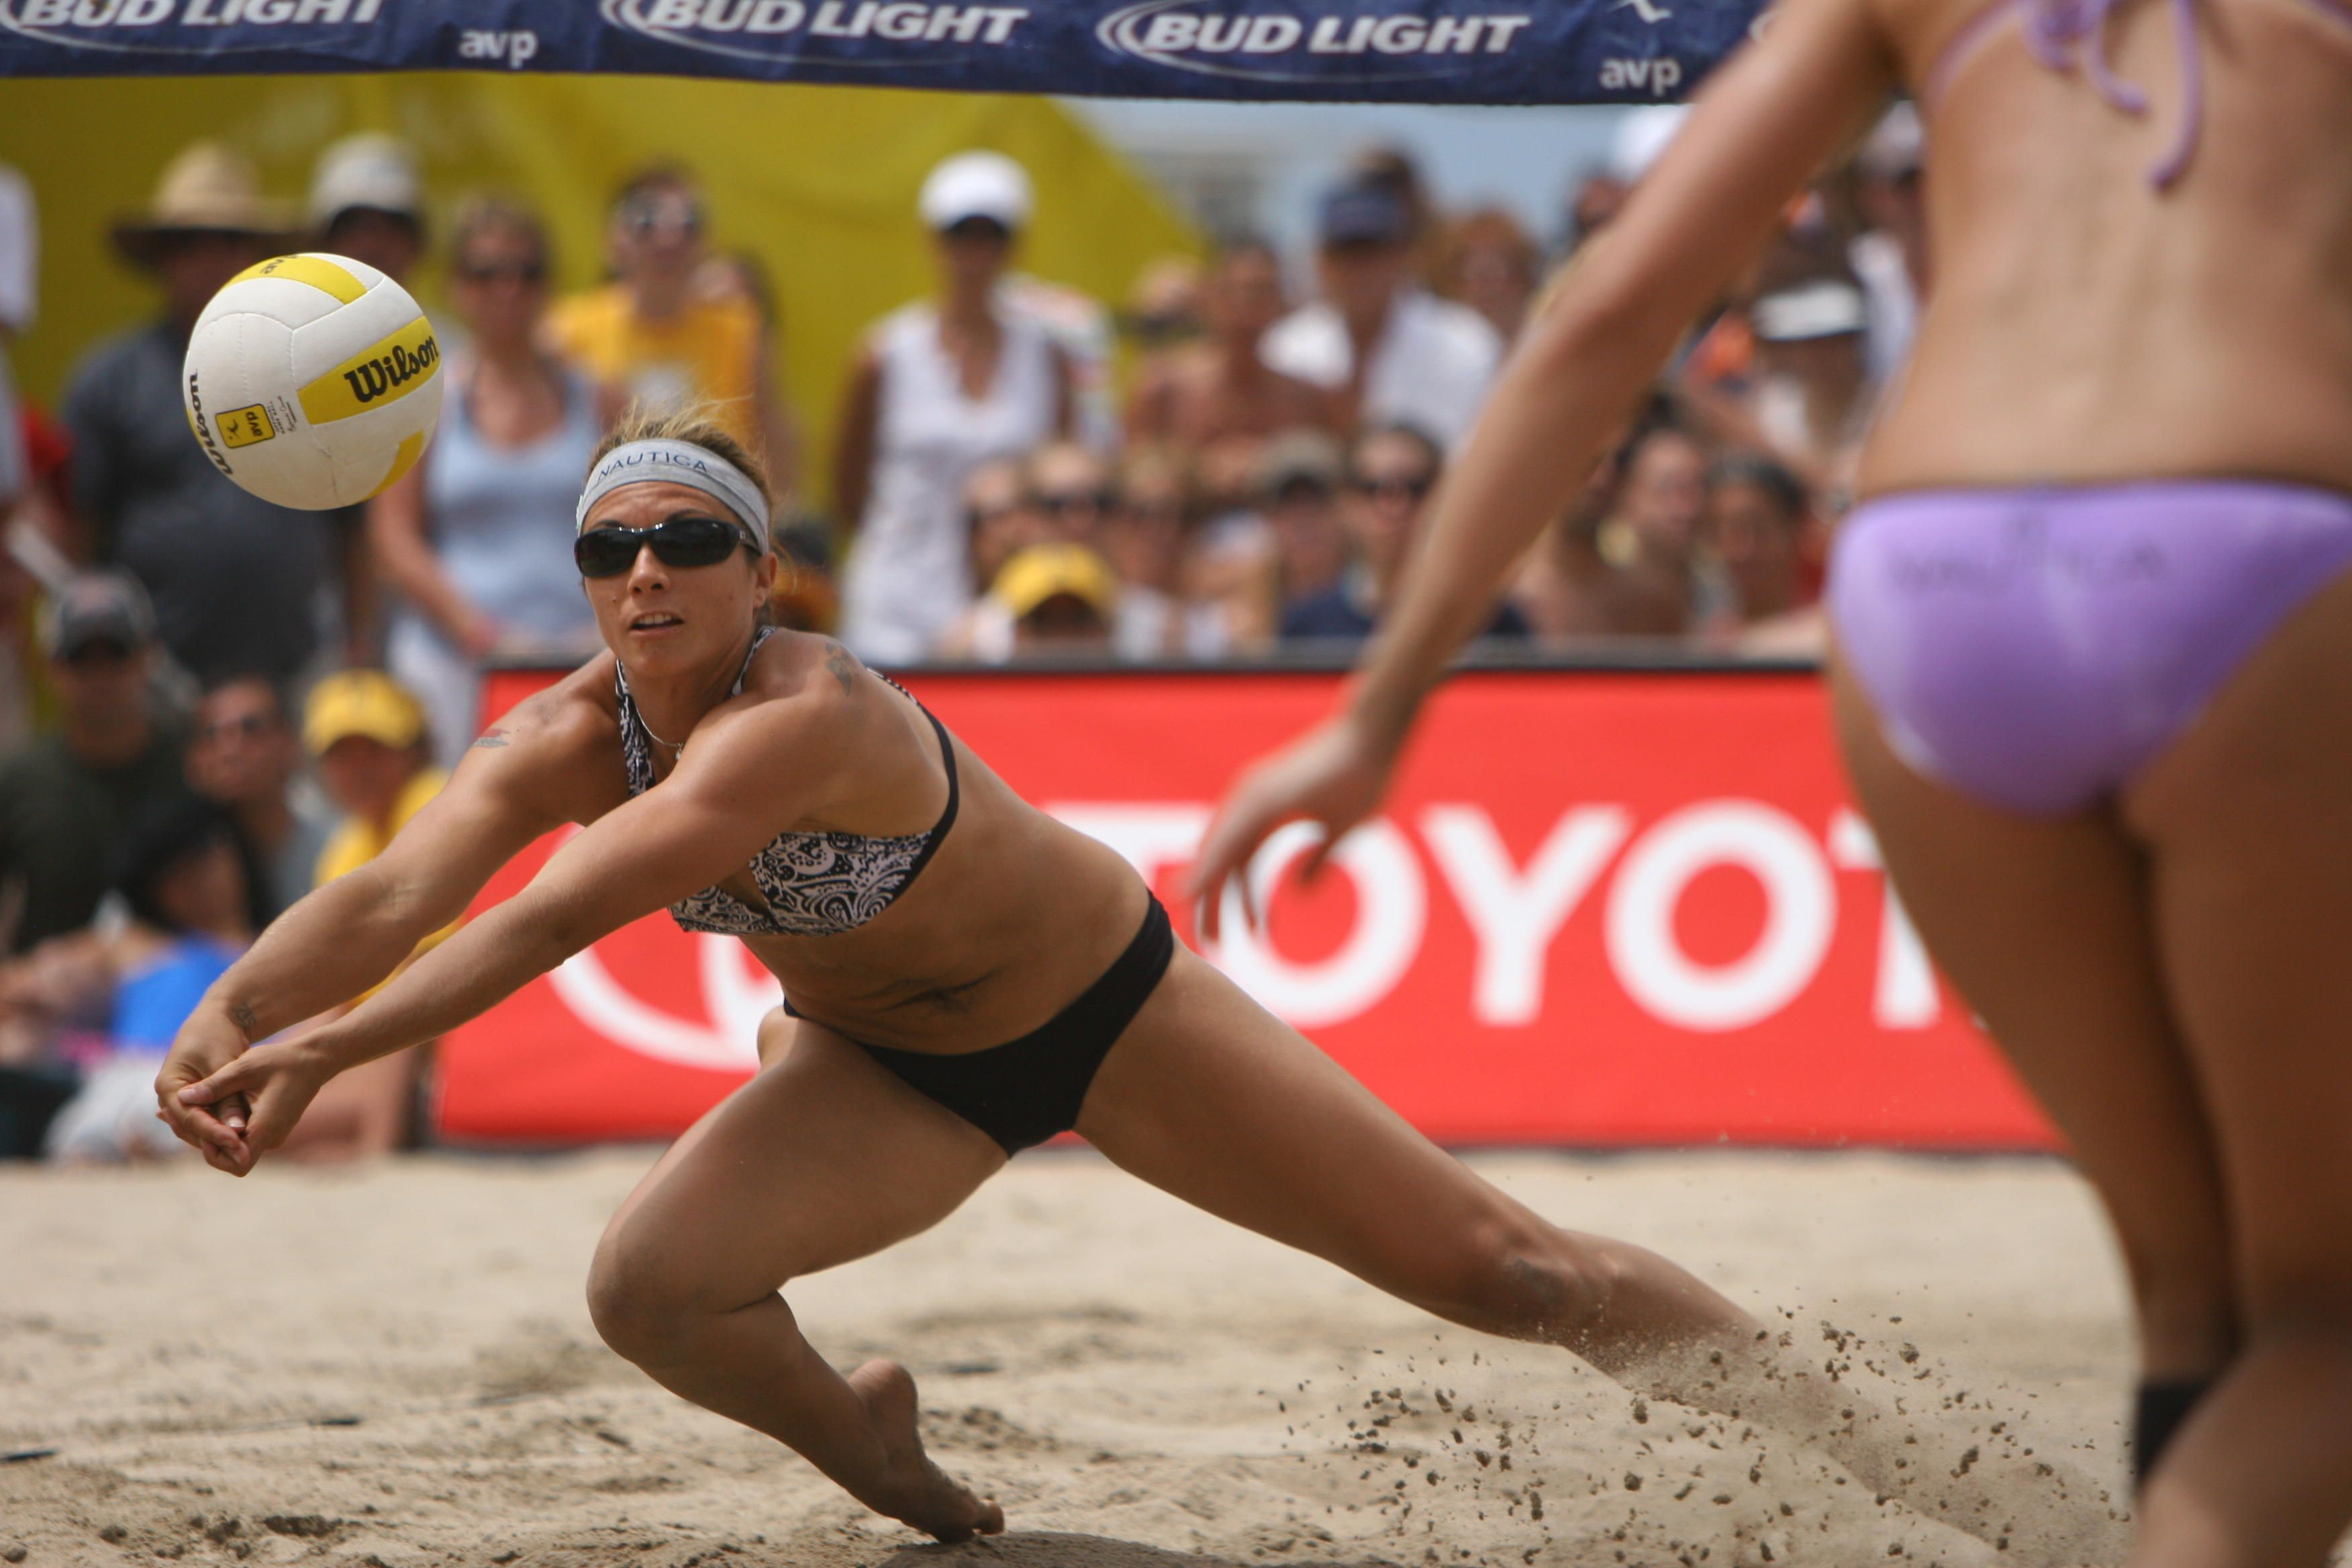 Misty Elizabeth May Treanor American Professional Beach Volleyball Player Beach Volleyball Volleyball Players Volleyball